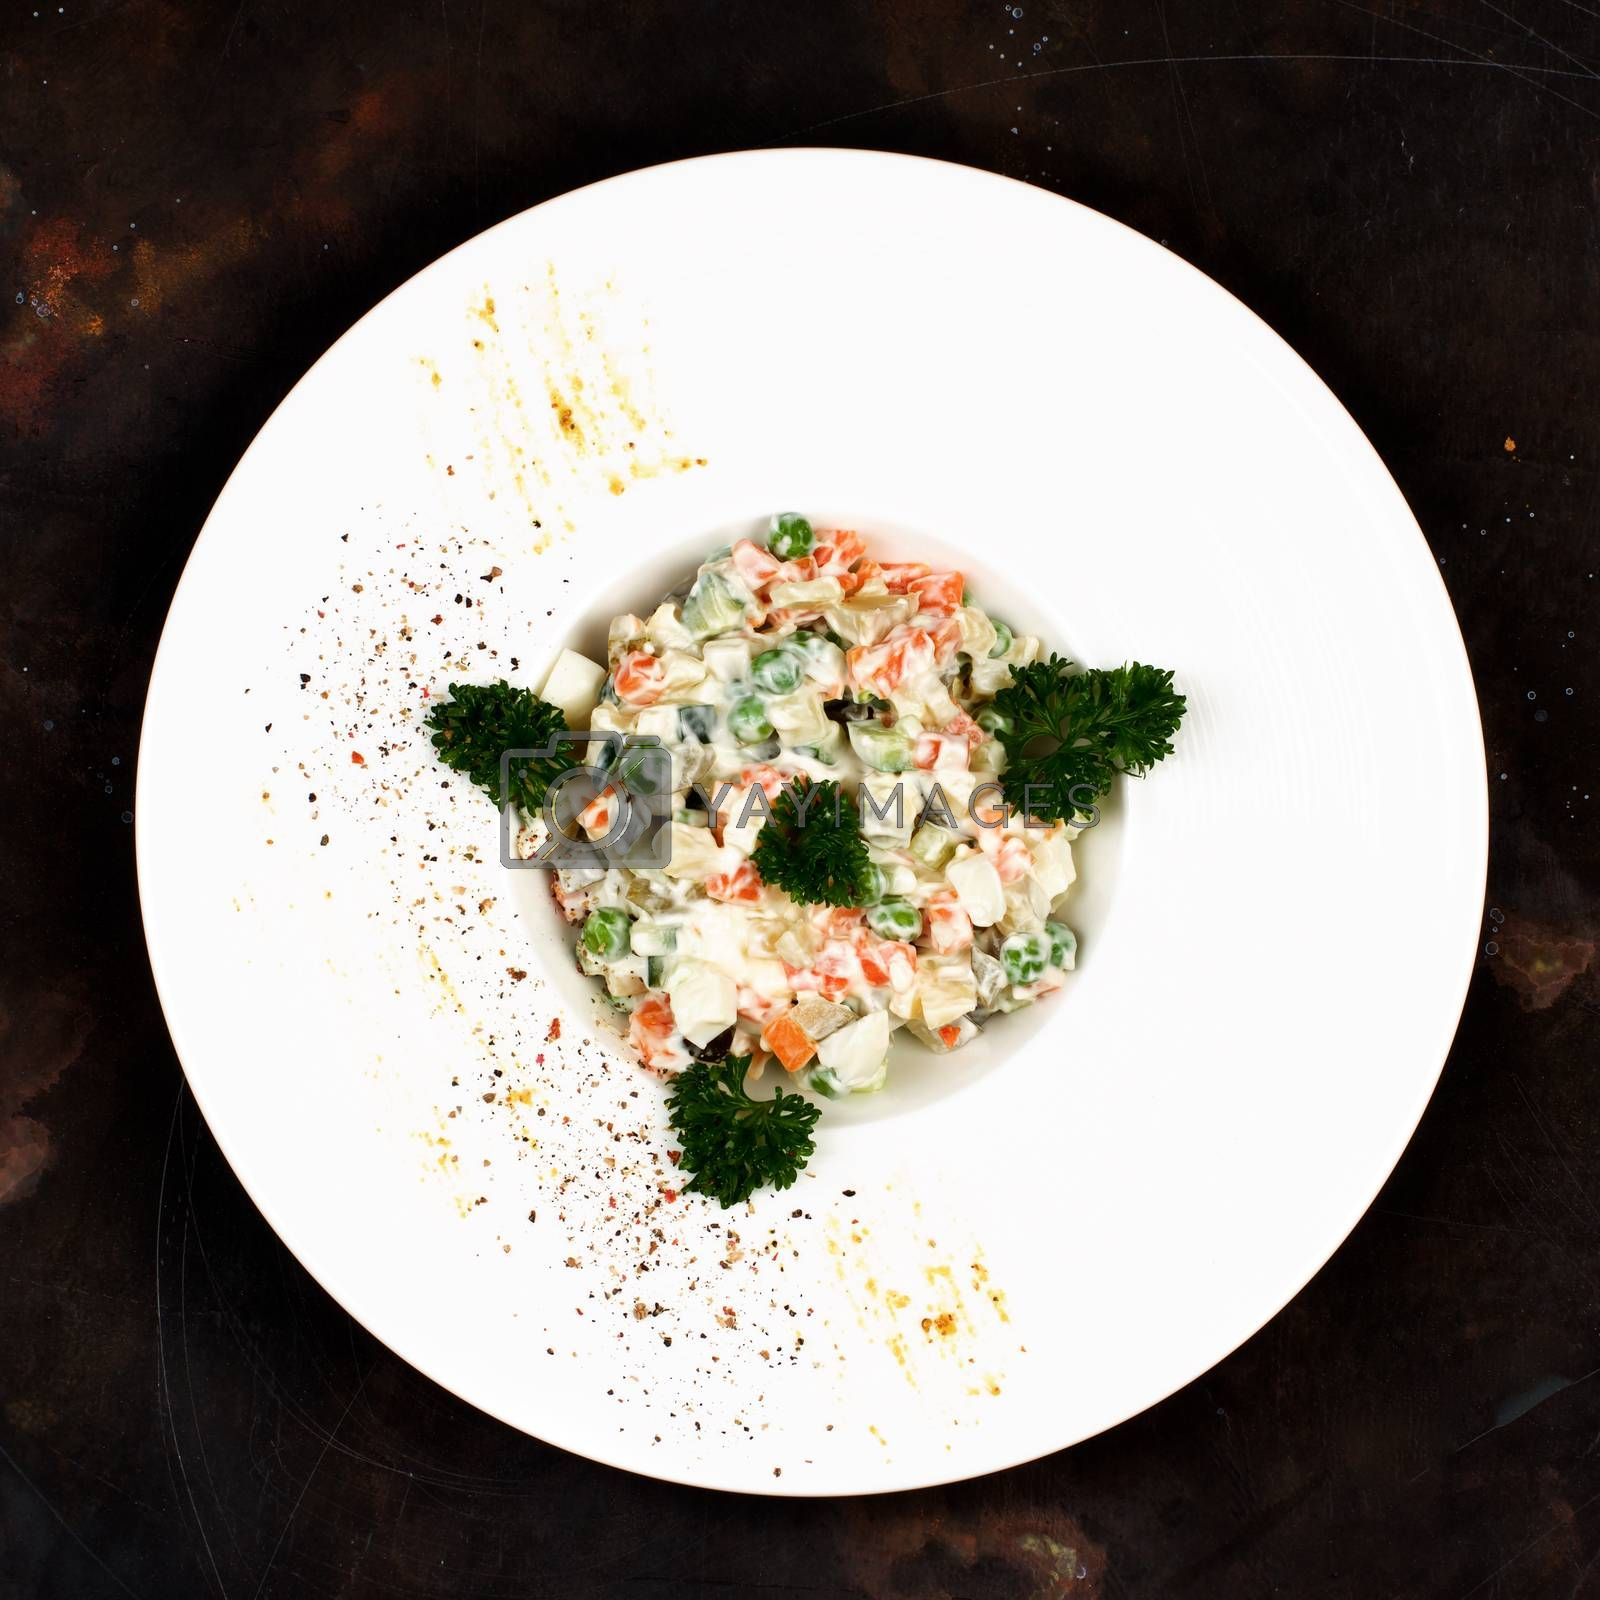 Traditional Russian Salad Olivier with Boiled Chicken Meat, Eggs and Vegetables Decorated with Parsley in White Plate on Dark background. Top View